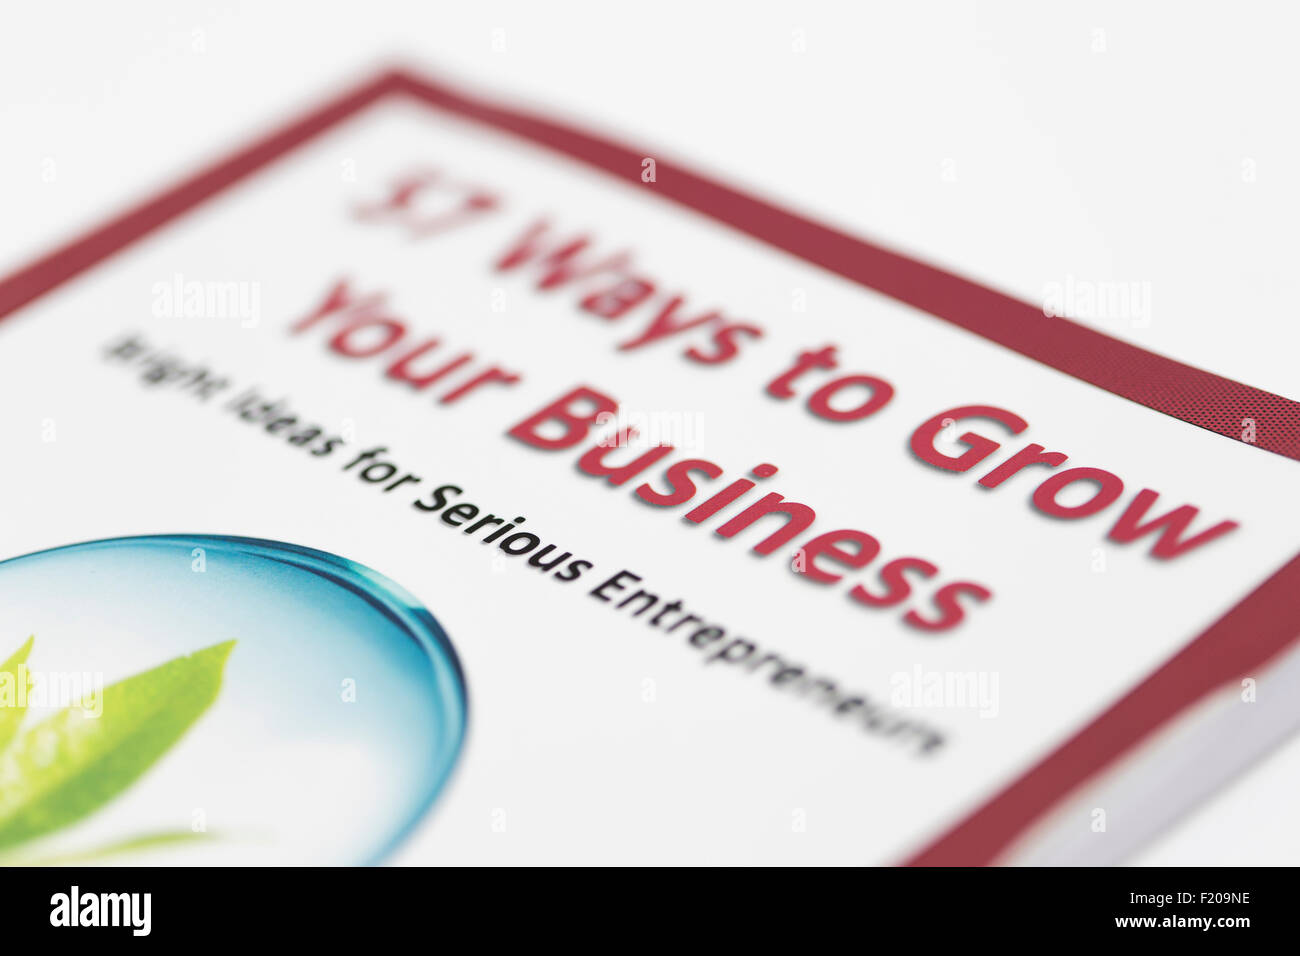 Ways to grow your business - Stock Image